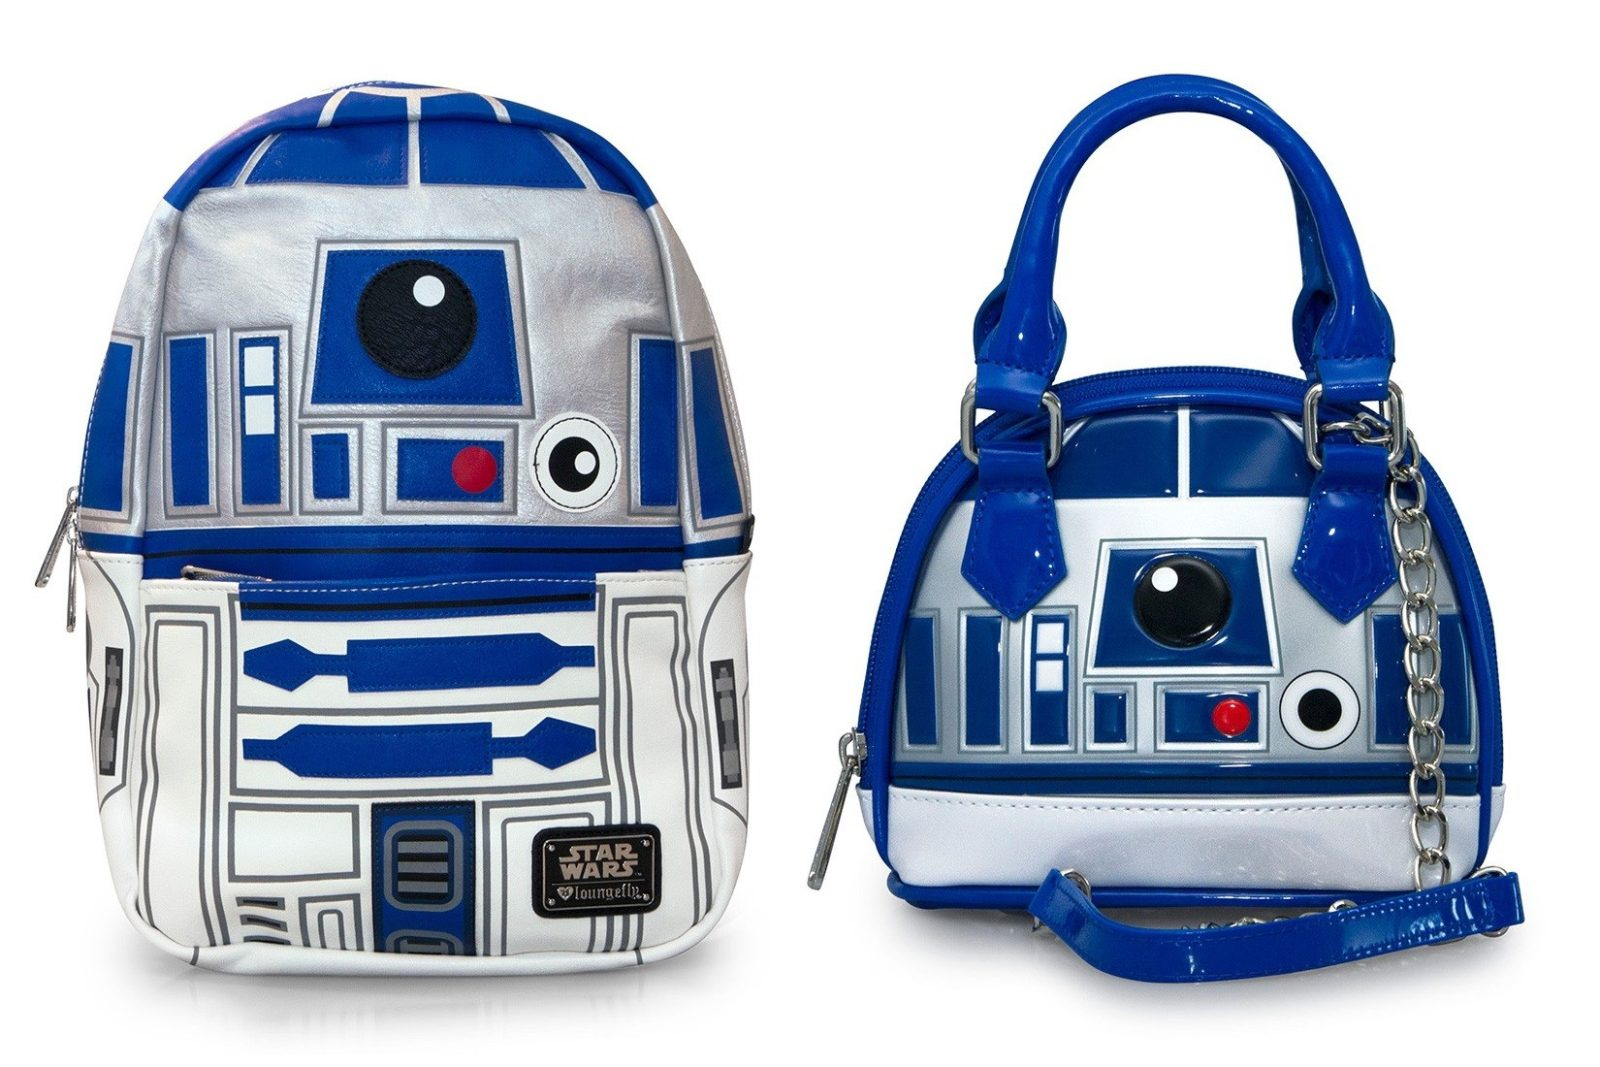 New R2-D2 bags from Loungefly!